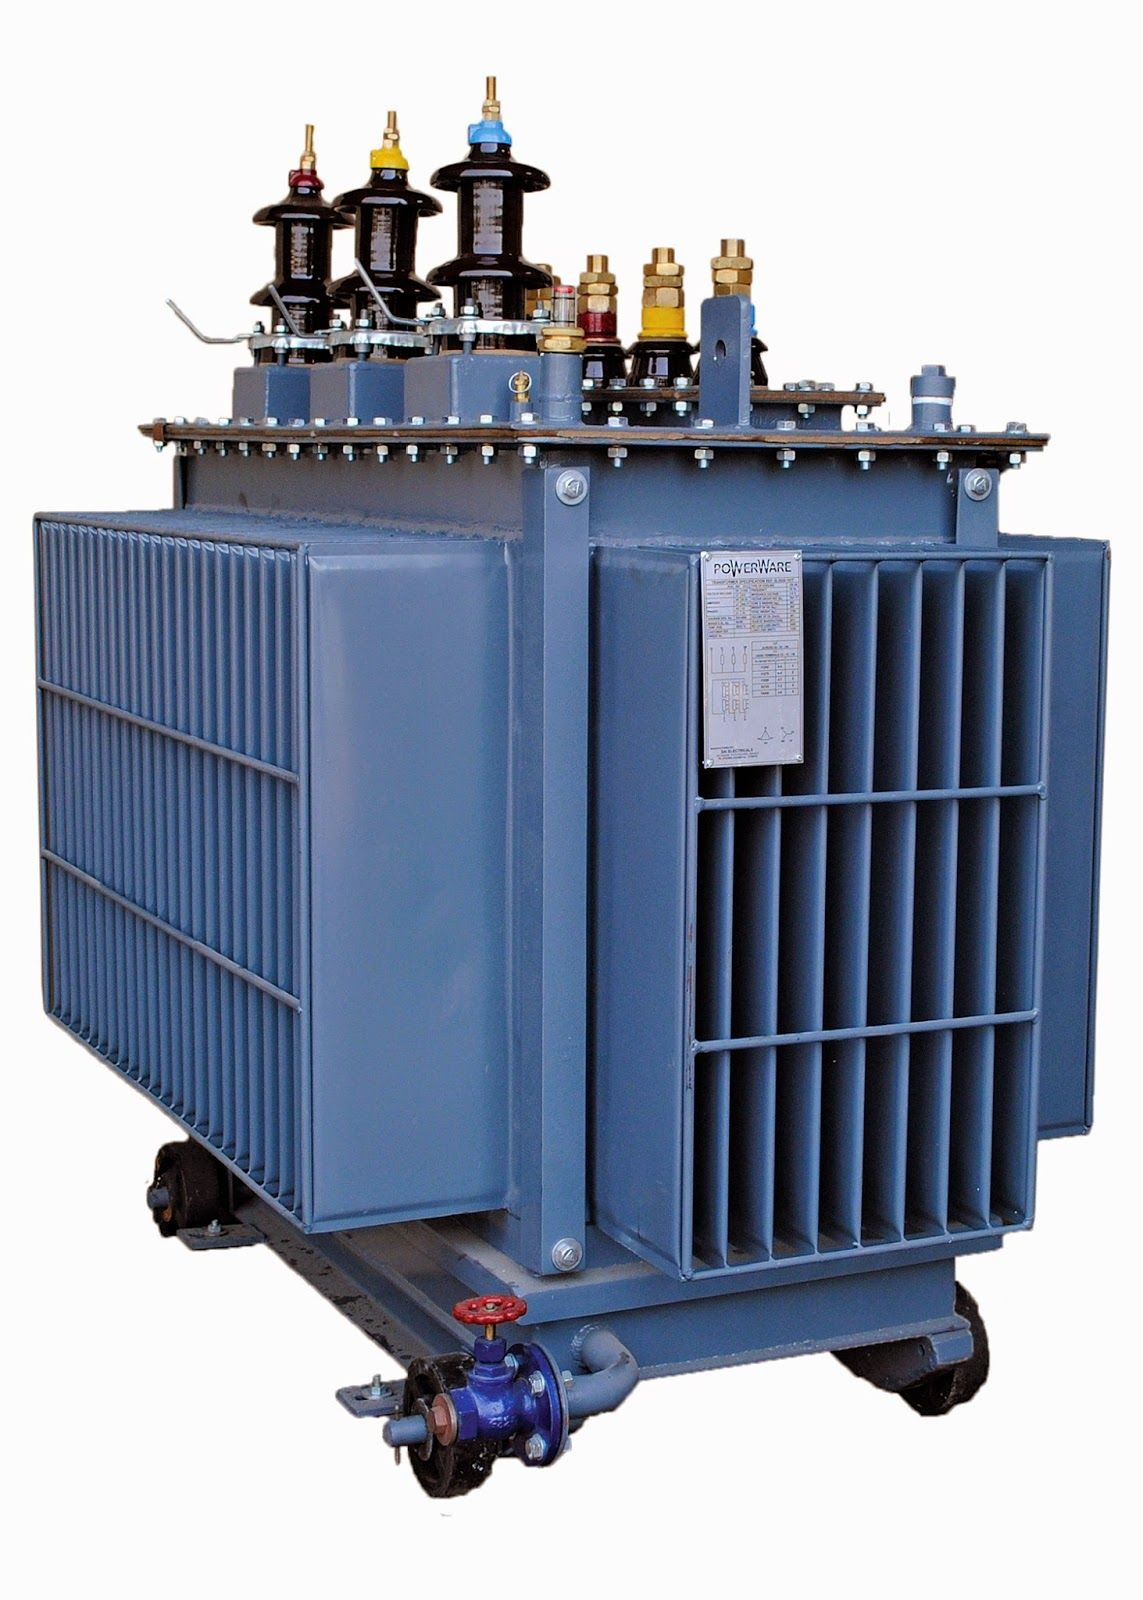 Recons A Manufacturers Of Servo Voltage Stabilizers Exporter Of Automatic Voltage Stabilizers Offers Various Models Specifications Manufacturing Electricity